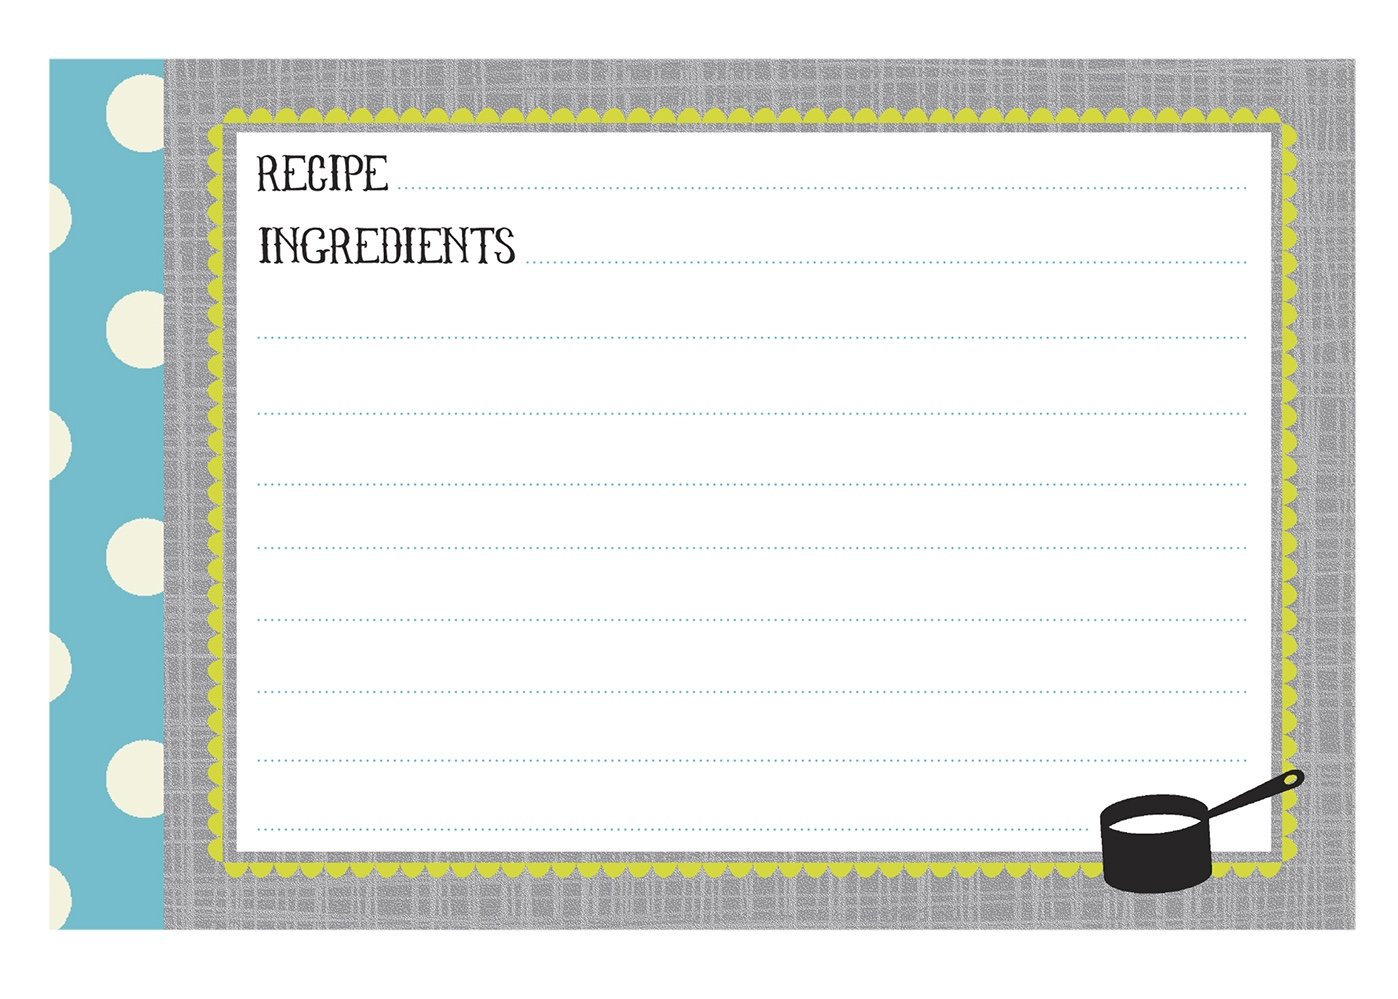 CRG Q12-14120 Kitchen Gear 40-Count Recipe Cards, 4 by 6-Inch, Multicolor C.R. Gibson